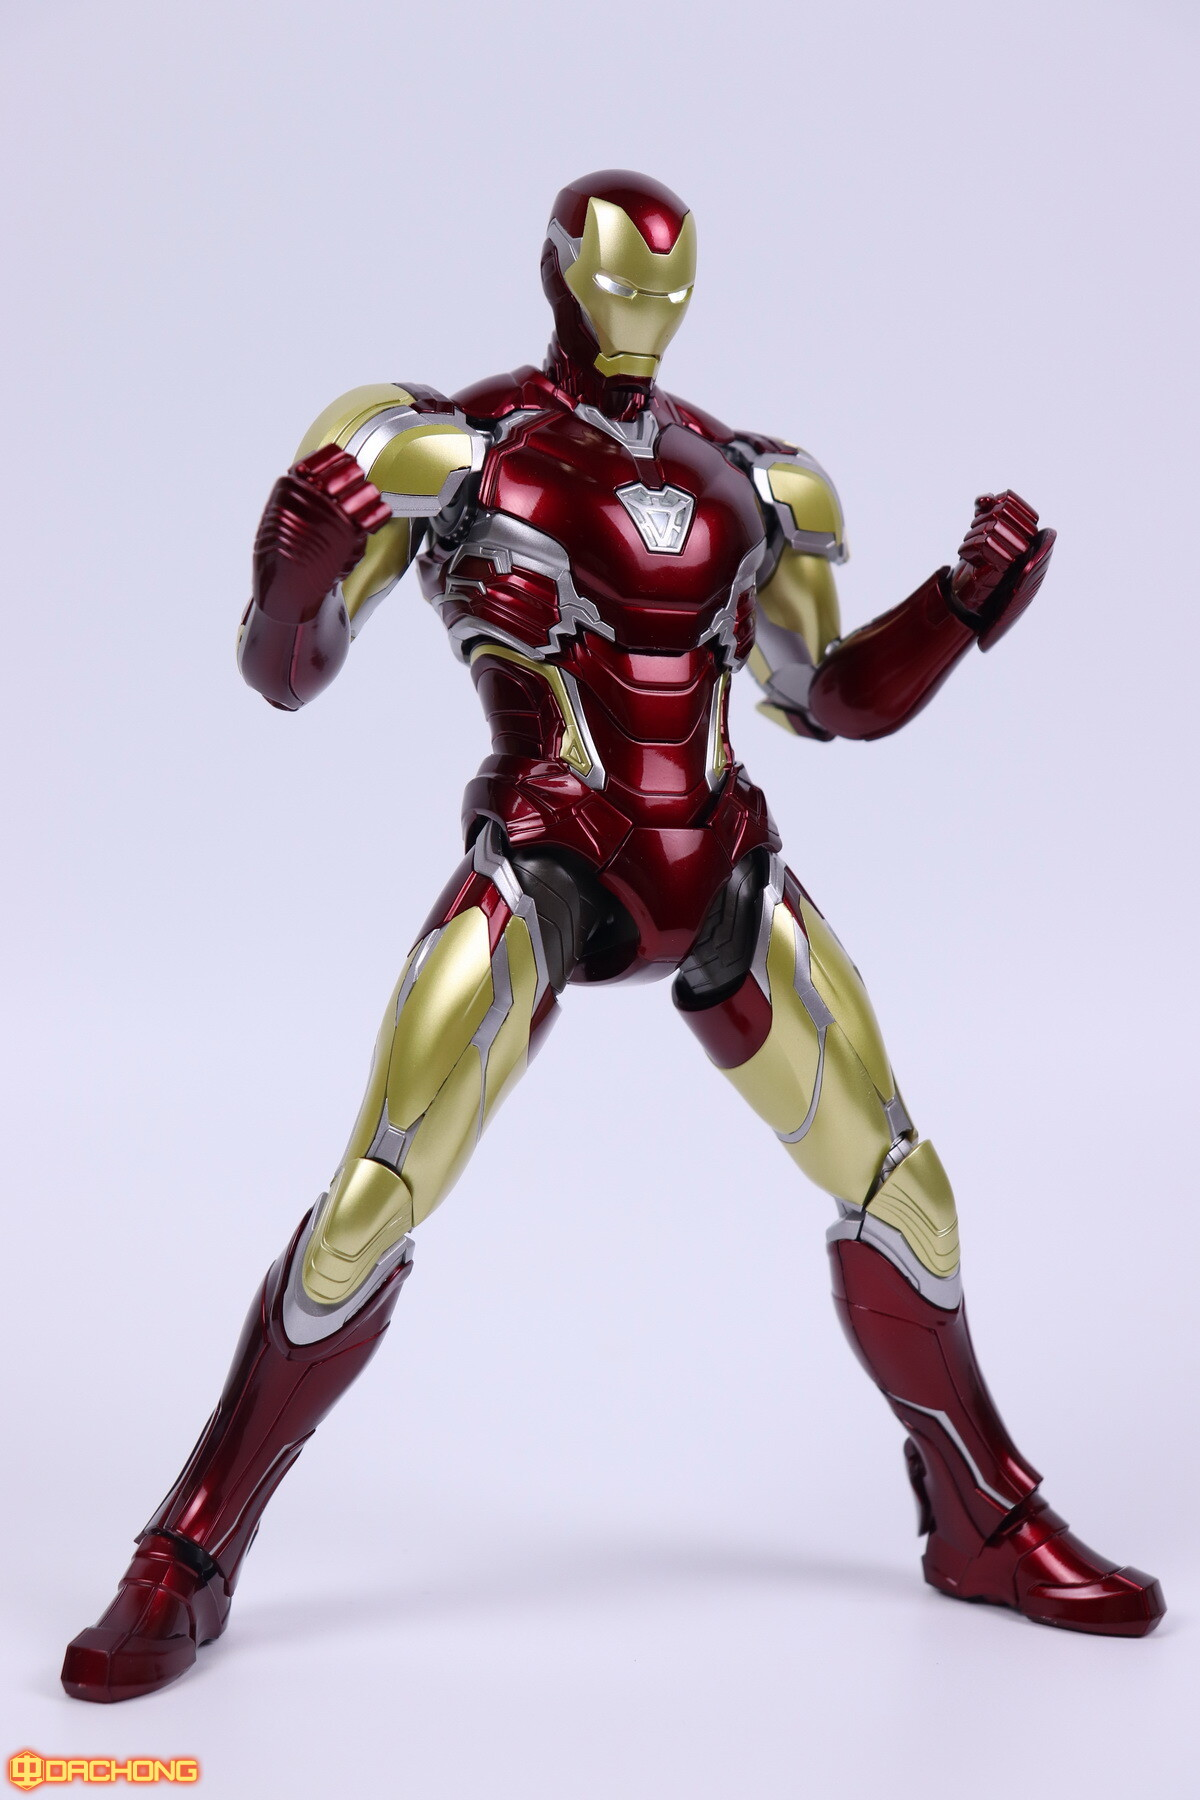 S498_2_e_model_ironman_mk85_dx_097.jpg